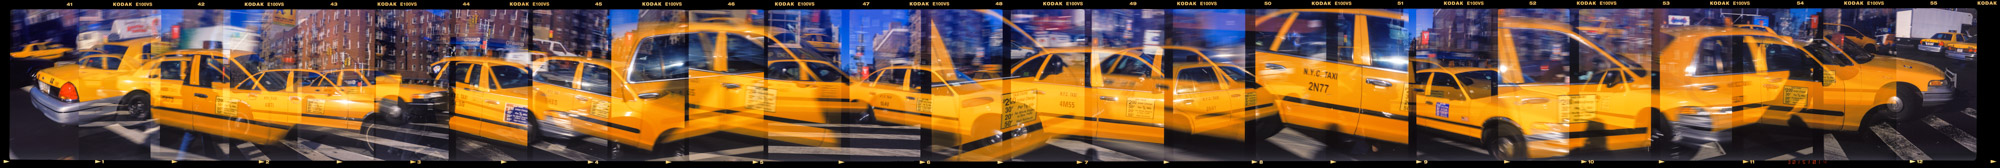 New York City Taxi, 6th and 23rd,